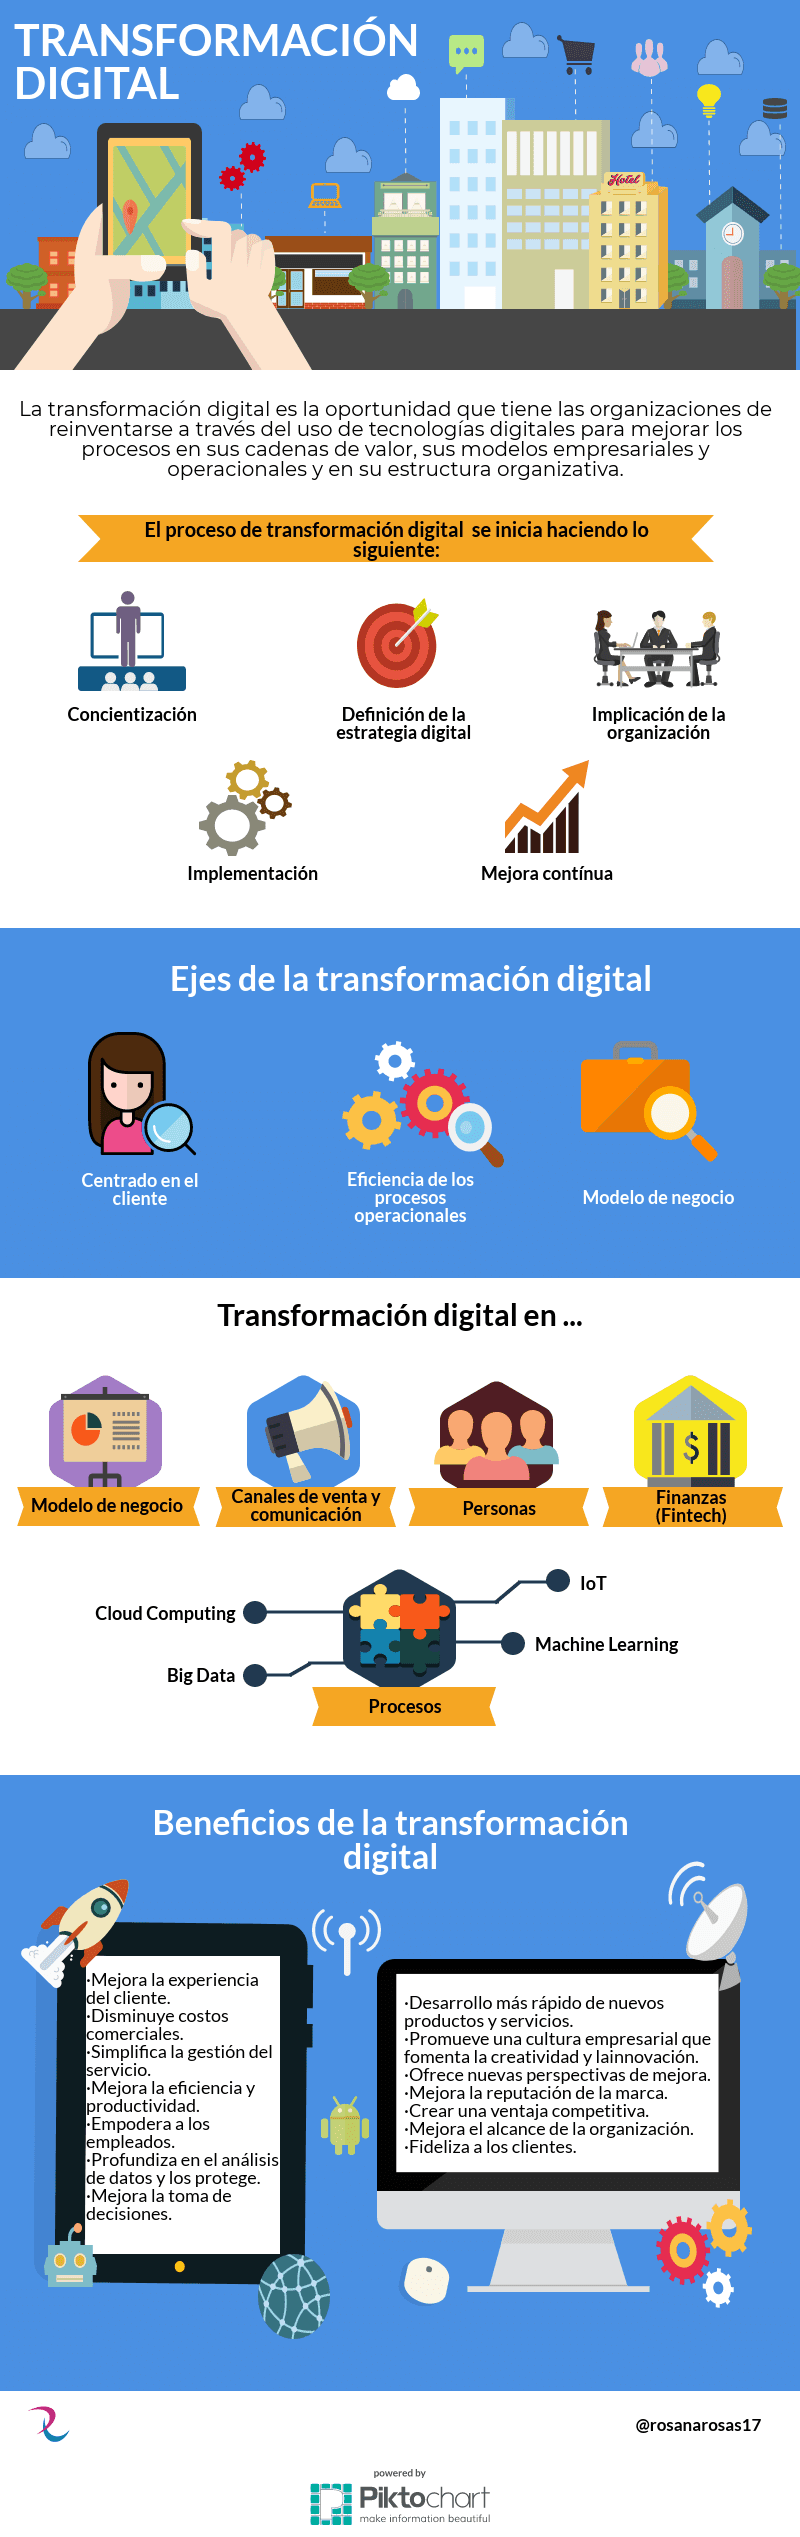 Proceso de Transformación Digital